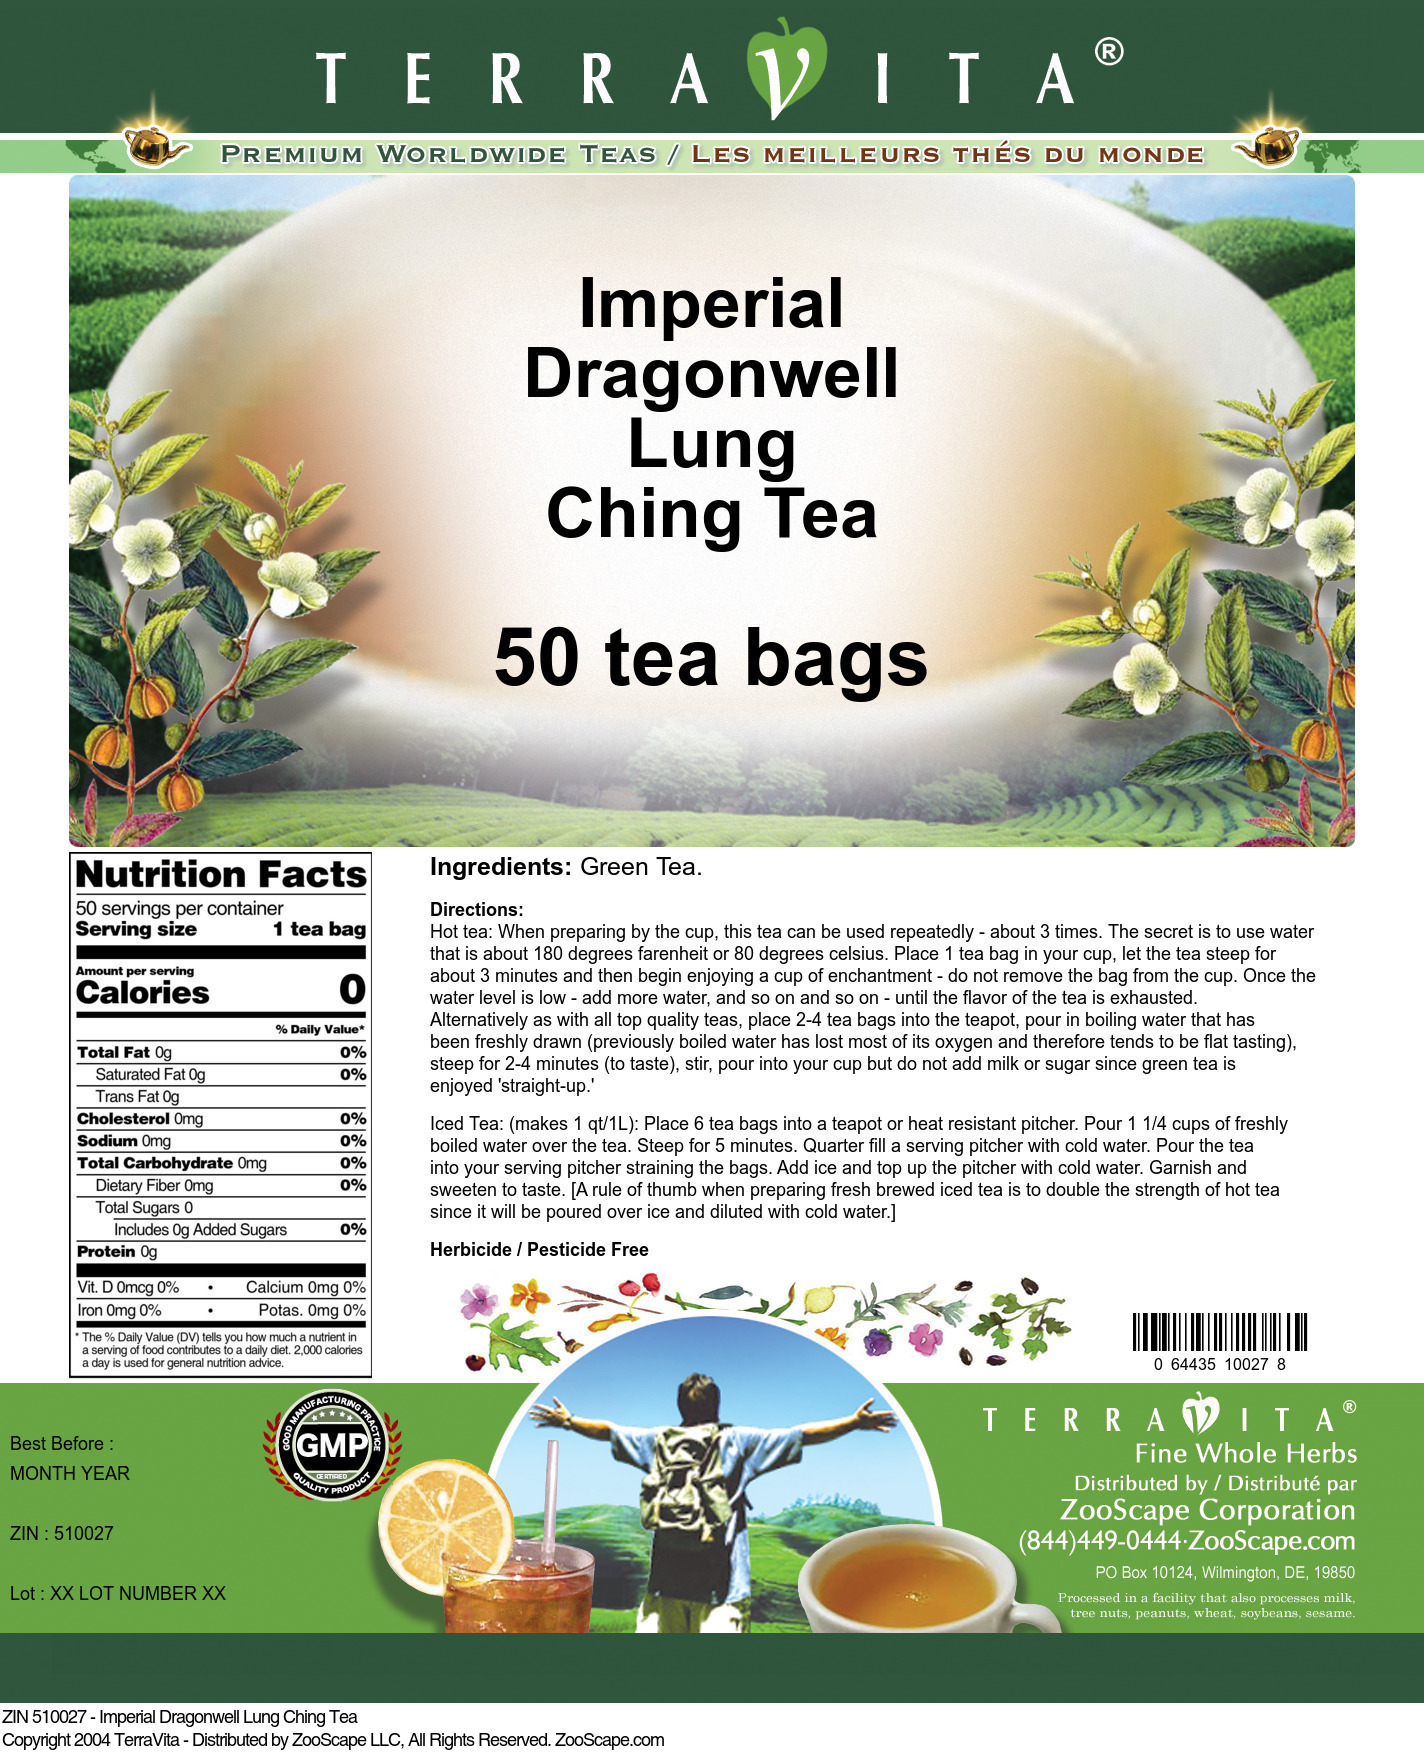 Imperial Dragonwell Lung Ching Tea